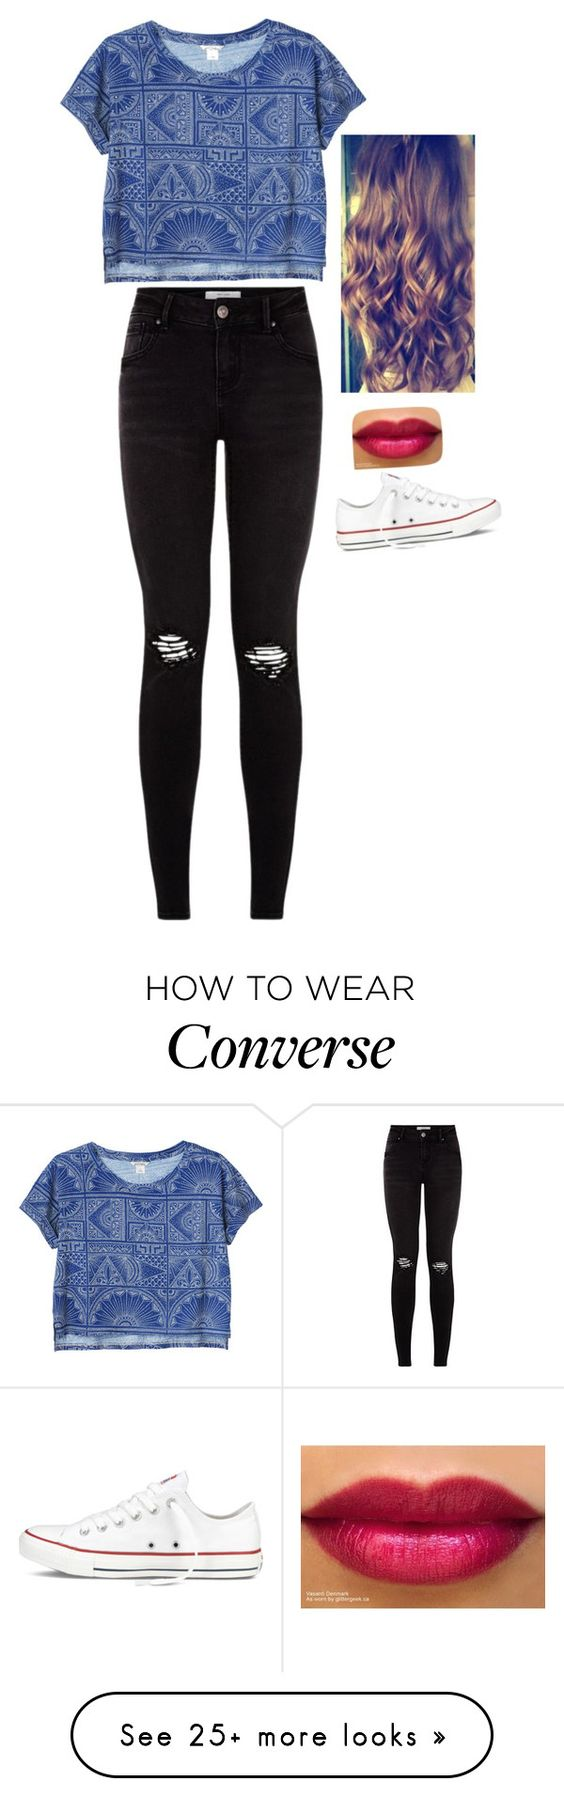 """""""302"""" by silviagp on Polyvore featuring Monki and Converse"""